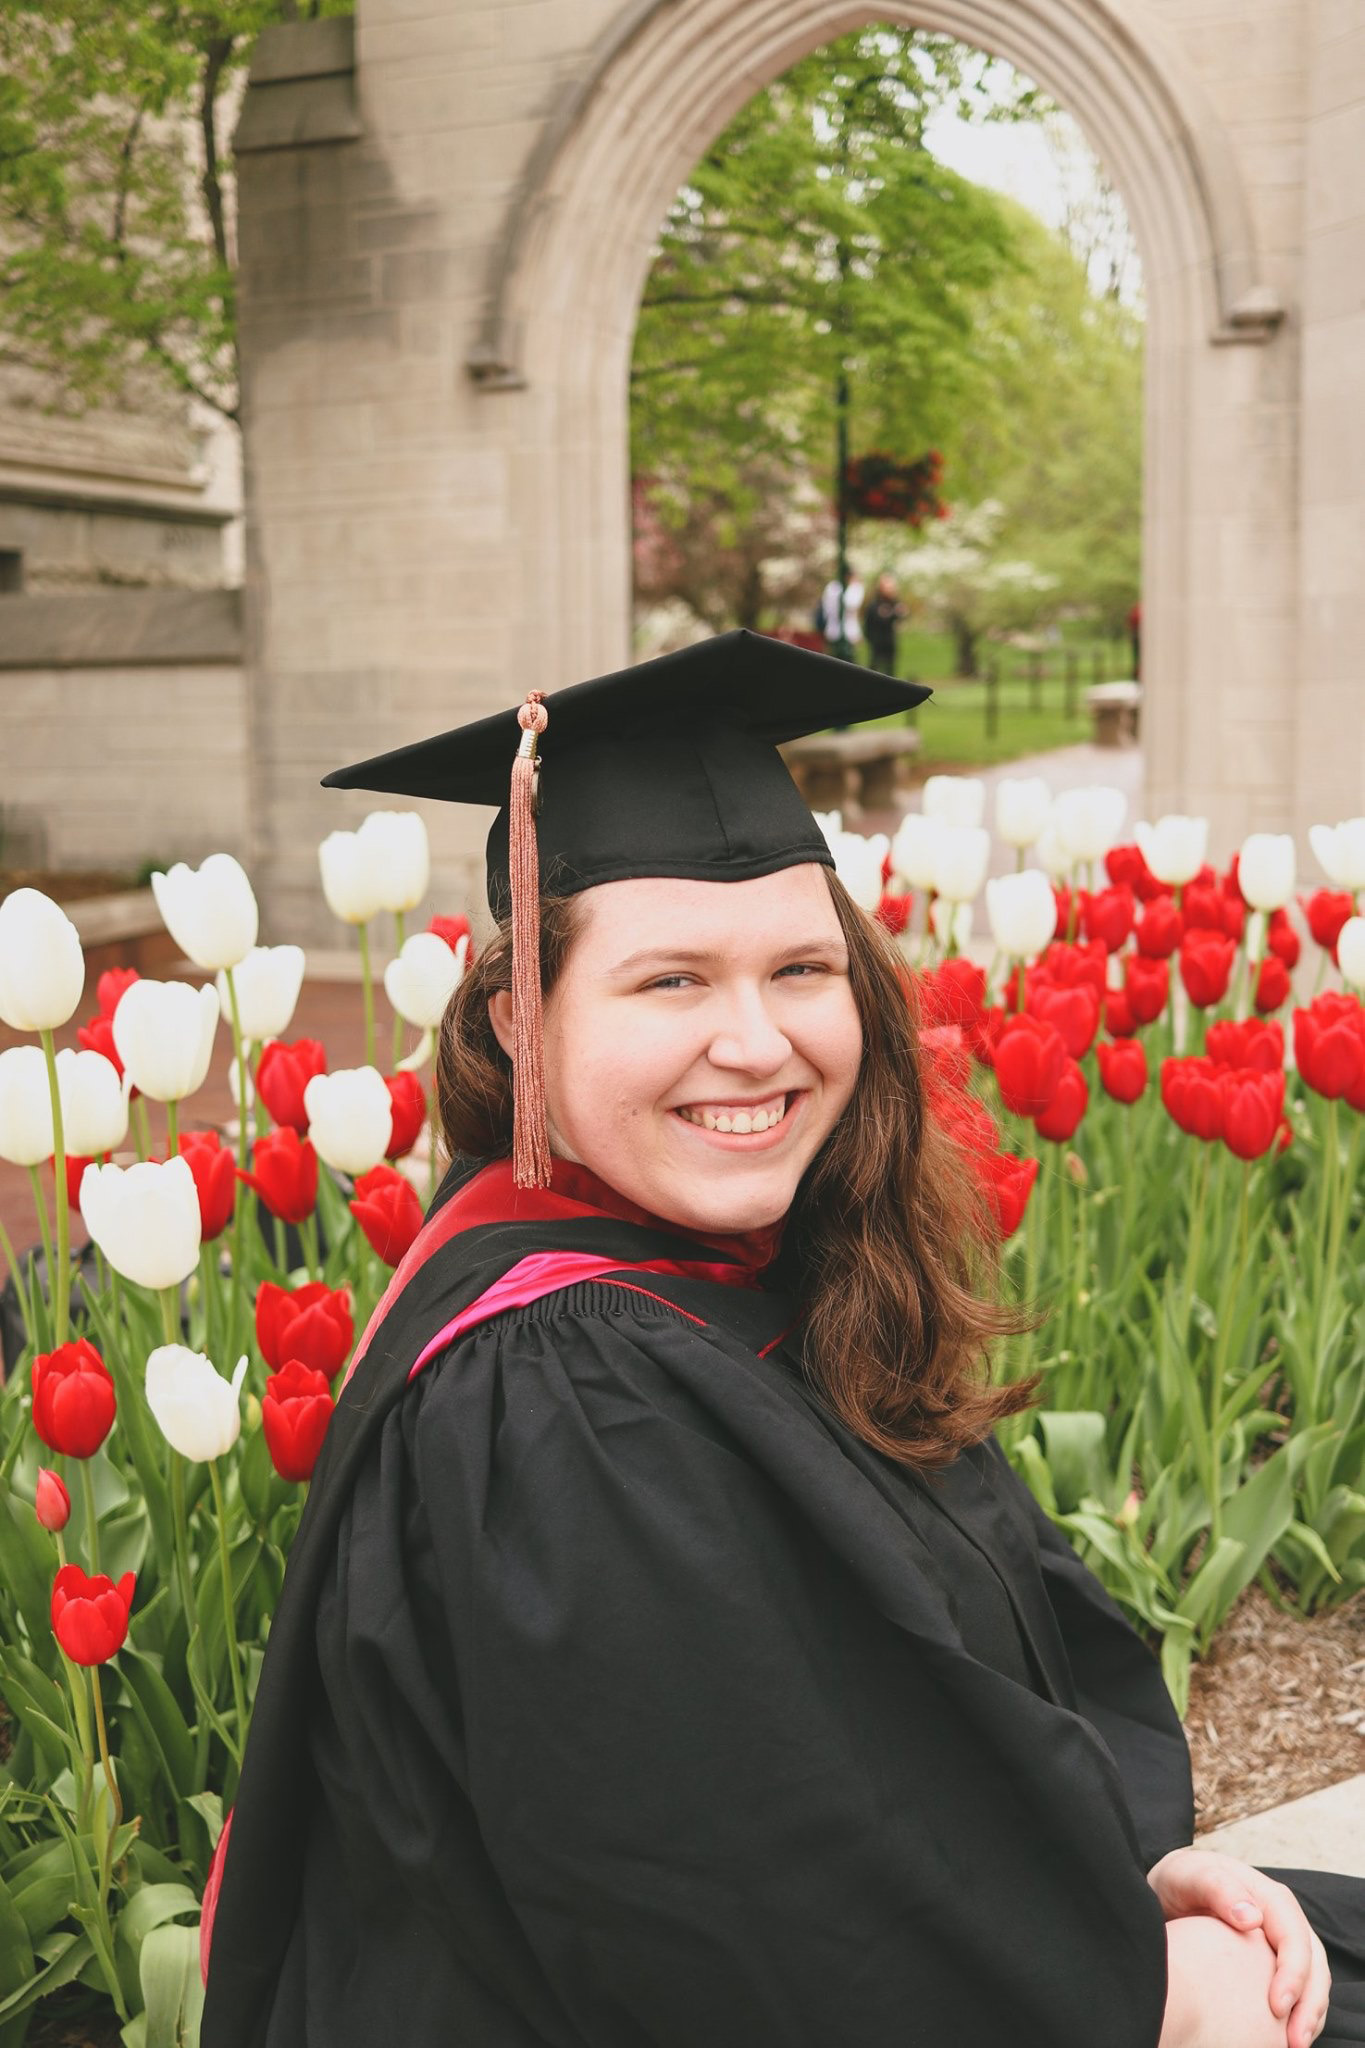 This is a color photograph of a student in a graduation cap and gown. She is seated in the front of the archway of the IU Sample Gates and is surrounded by red and white tulips.